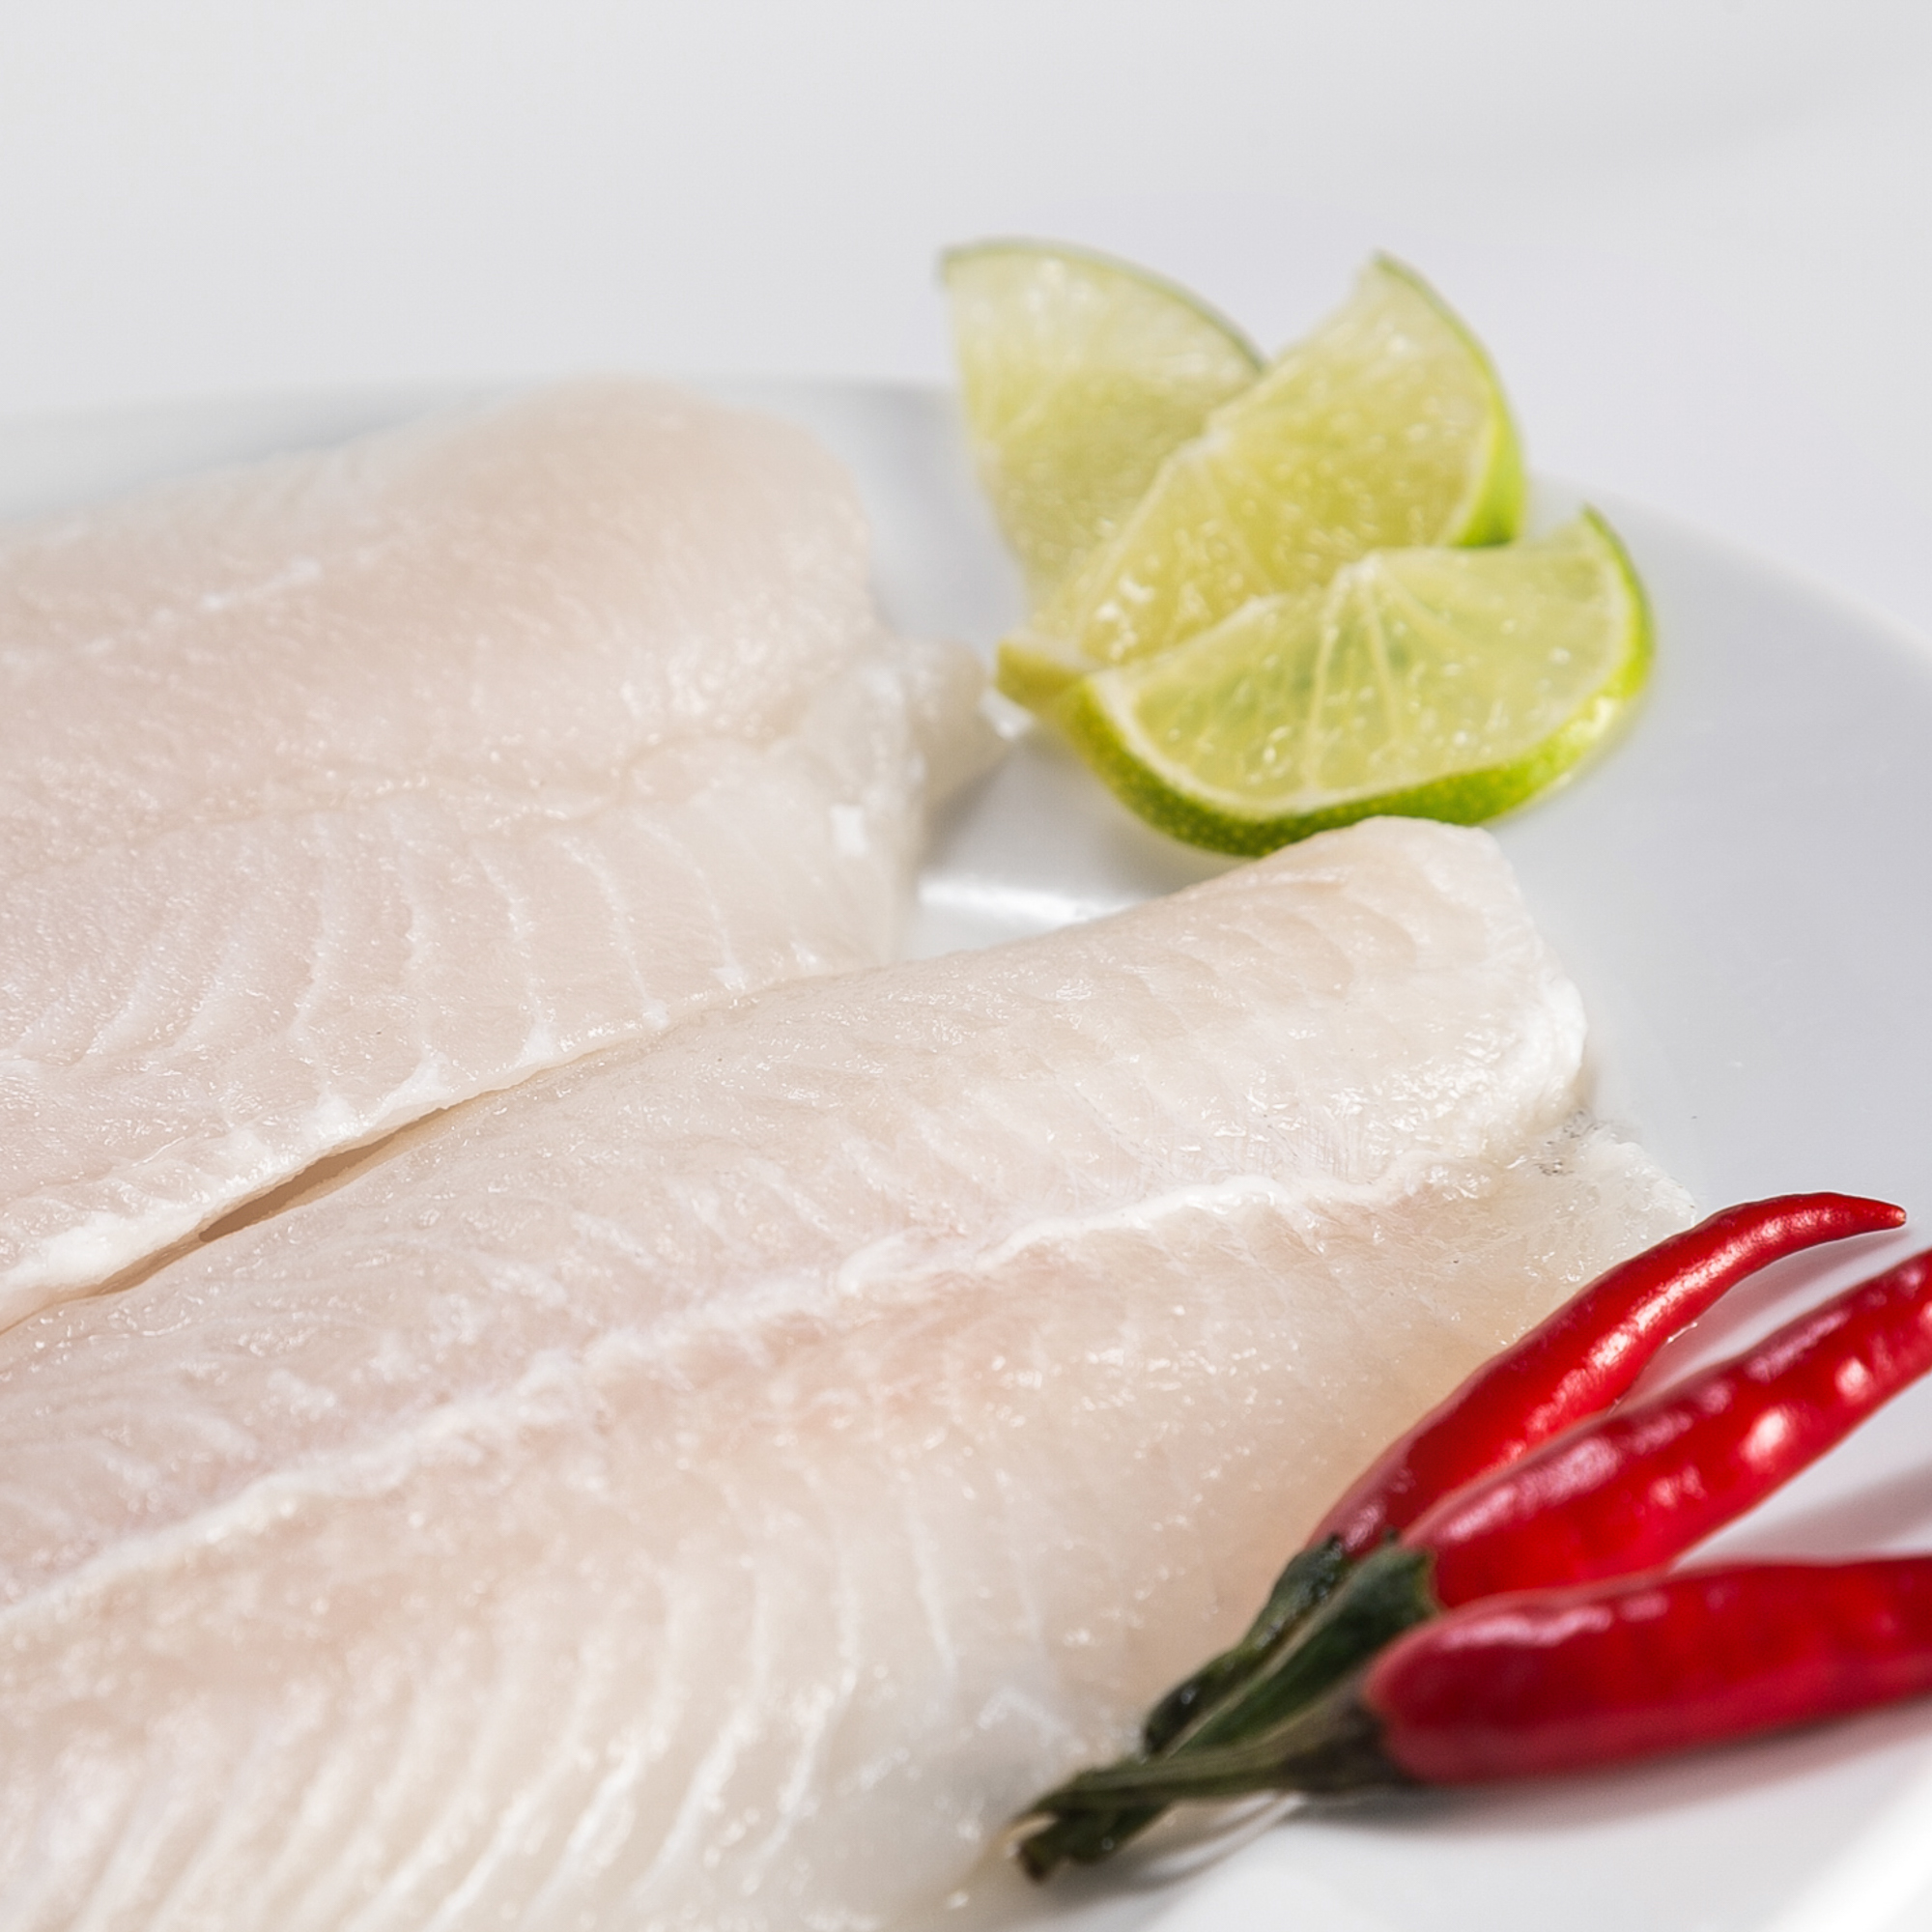 Super Quality Grade Organic Nature Feature Pangasius Basa Fish Fillet Part Welltrimmed with best price From Vietnam